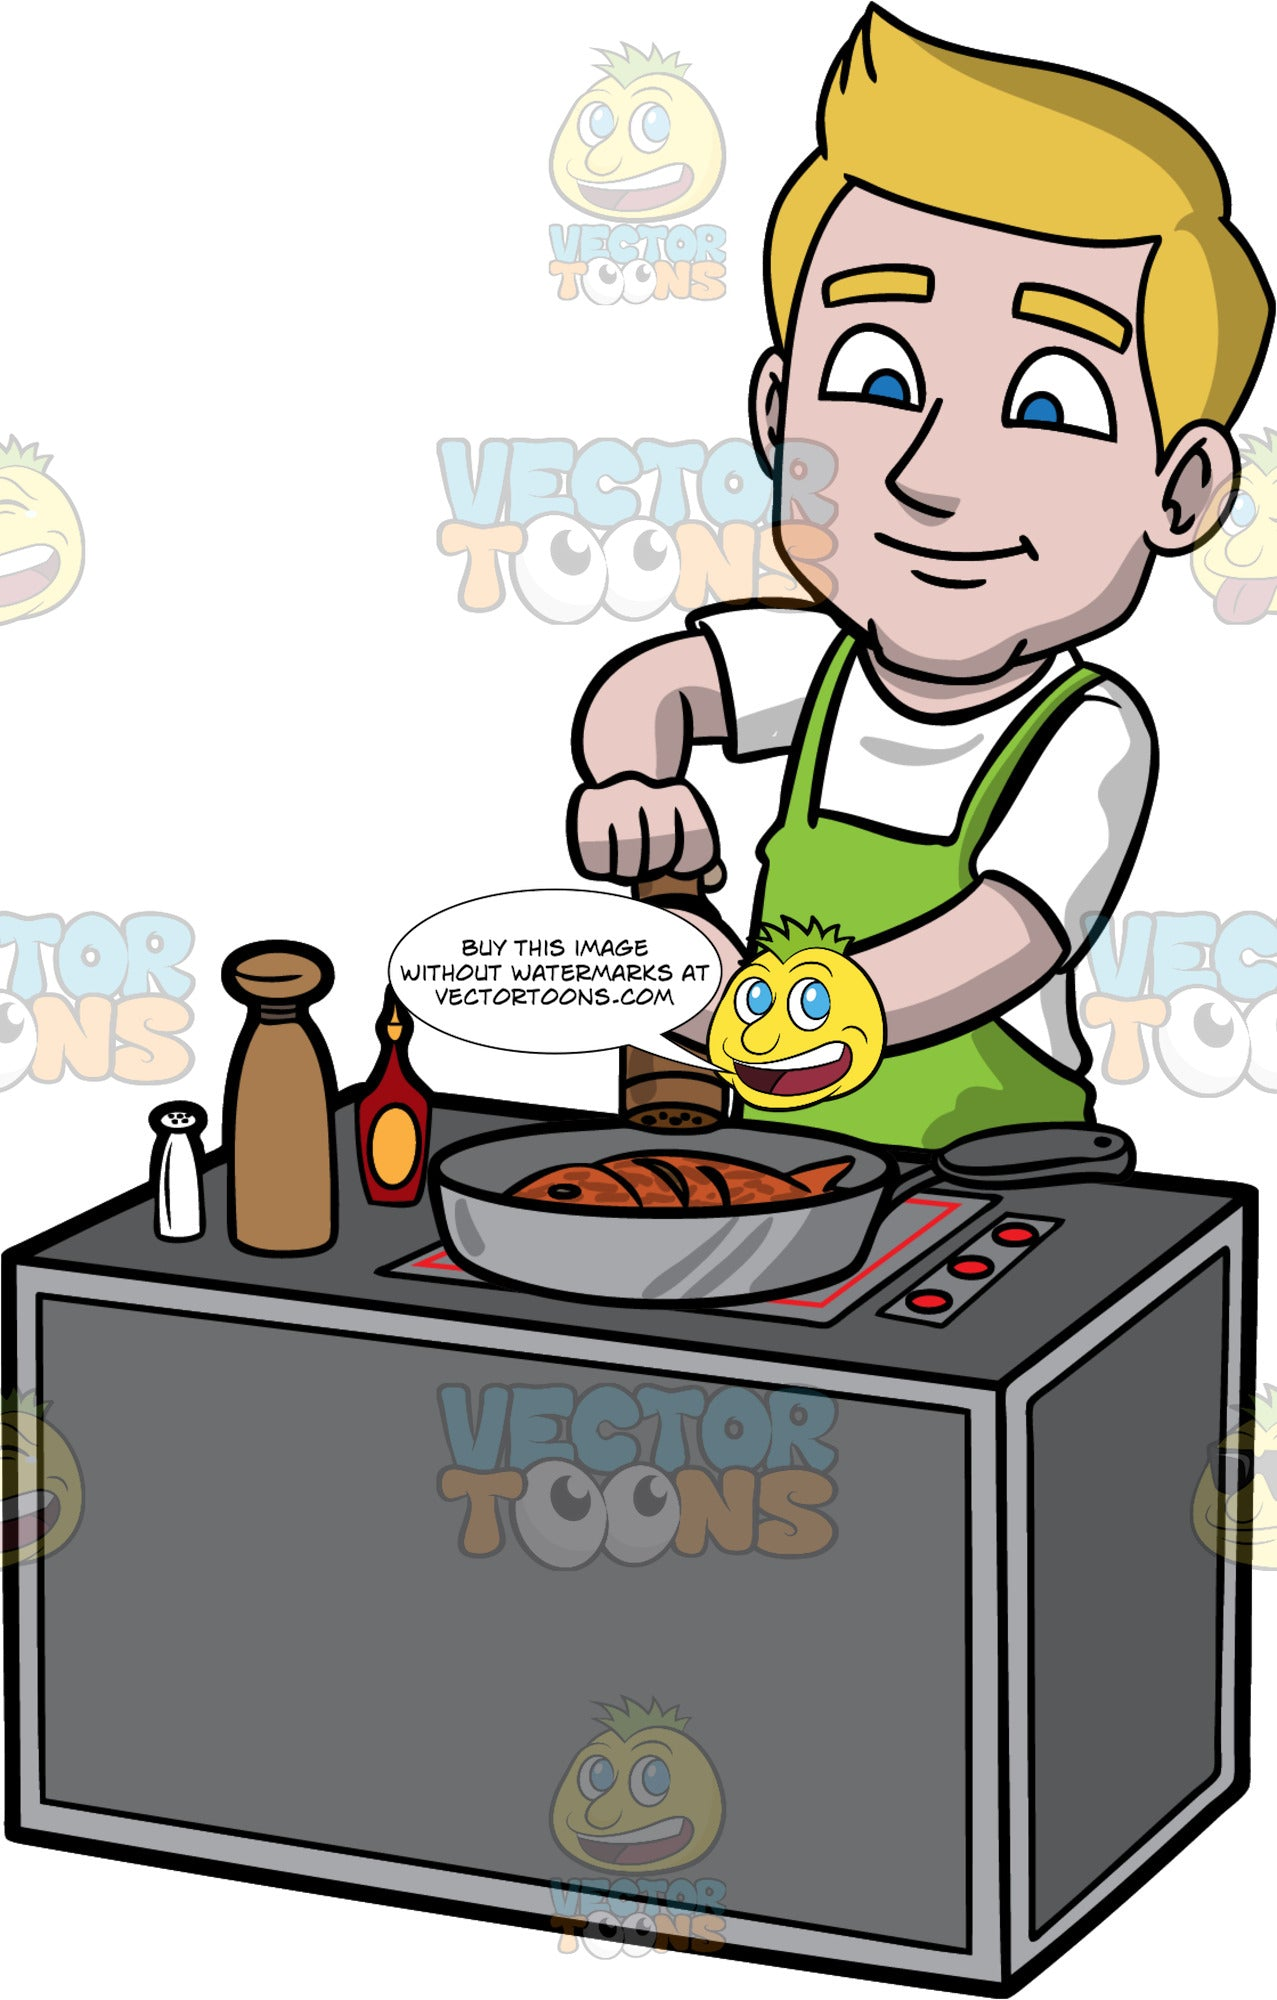 Matthew Adding Pepper To The Fish He Is Cooking. A man with dirty blonde hair and blue eyes, wearing a white t-shirt, and green apron, standing behind a stove and using a pepper mill to add pepper to the fish he is cooking in a frying pan